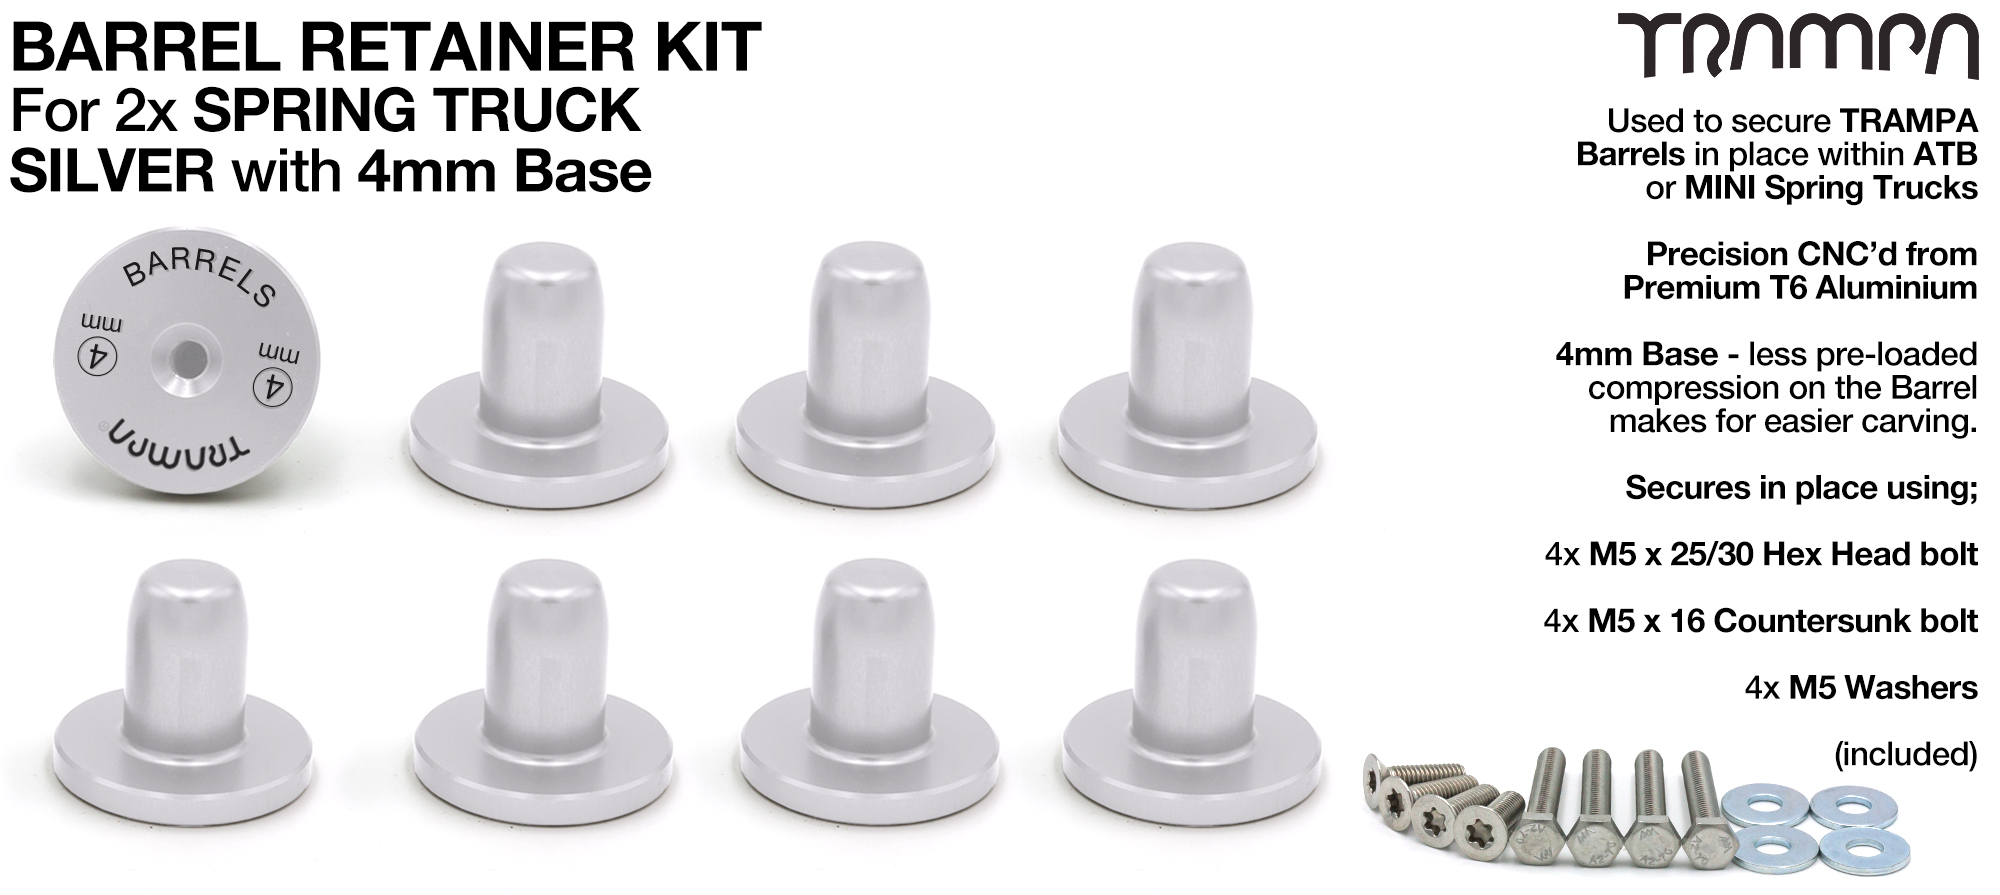 Barrel Retainers x8 with 4mm Base - SILVER